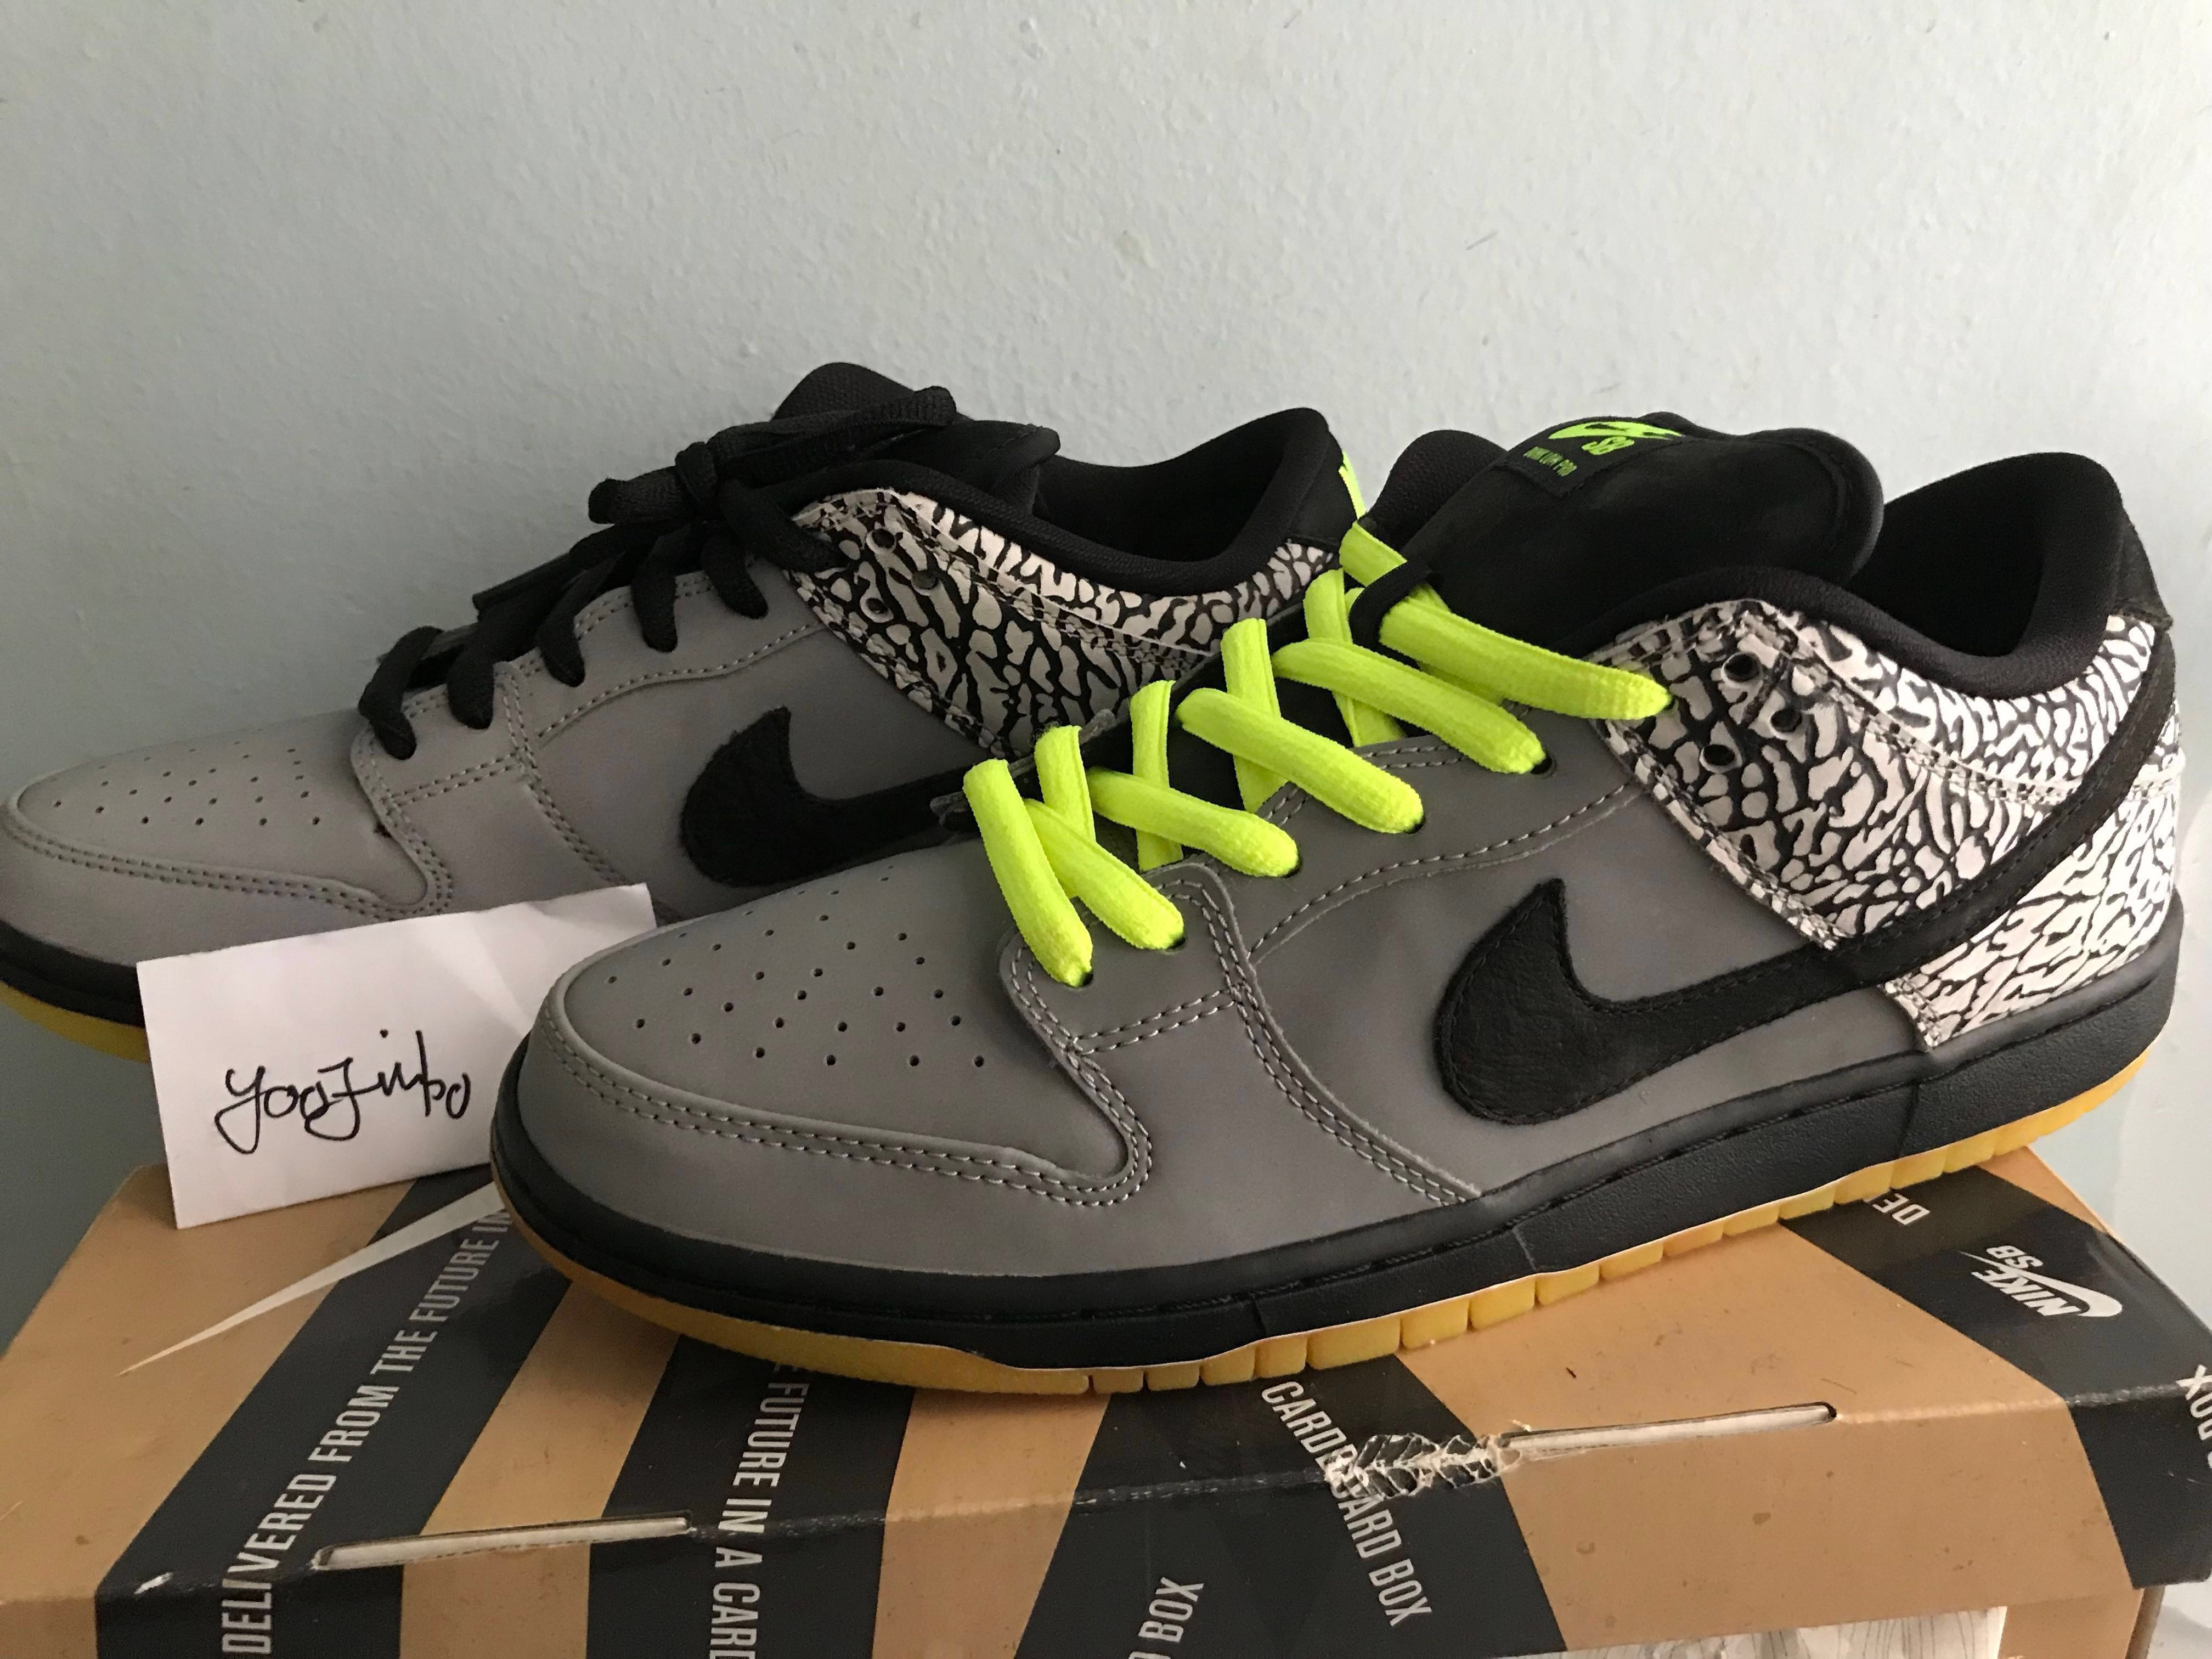 new product 98a1a 26891 Nike SB Dunk Low 112 , Men s Fashion, Footwear, Sneakers on Carousell